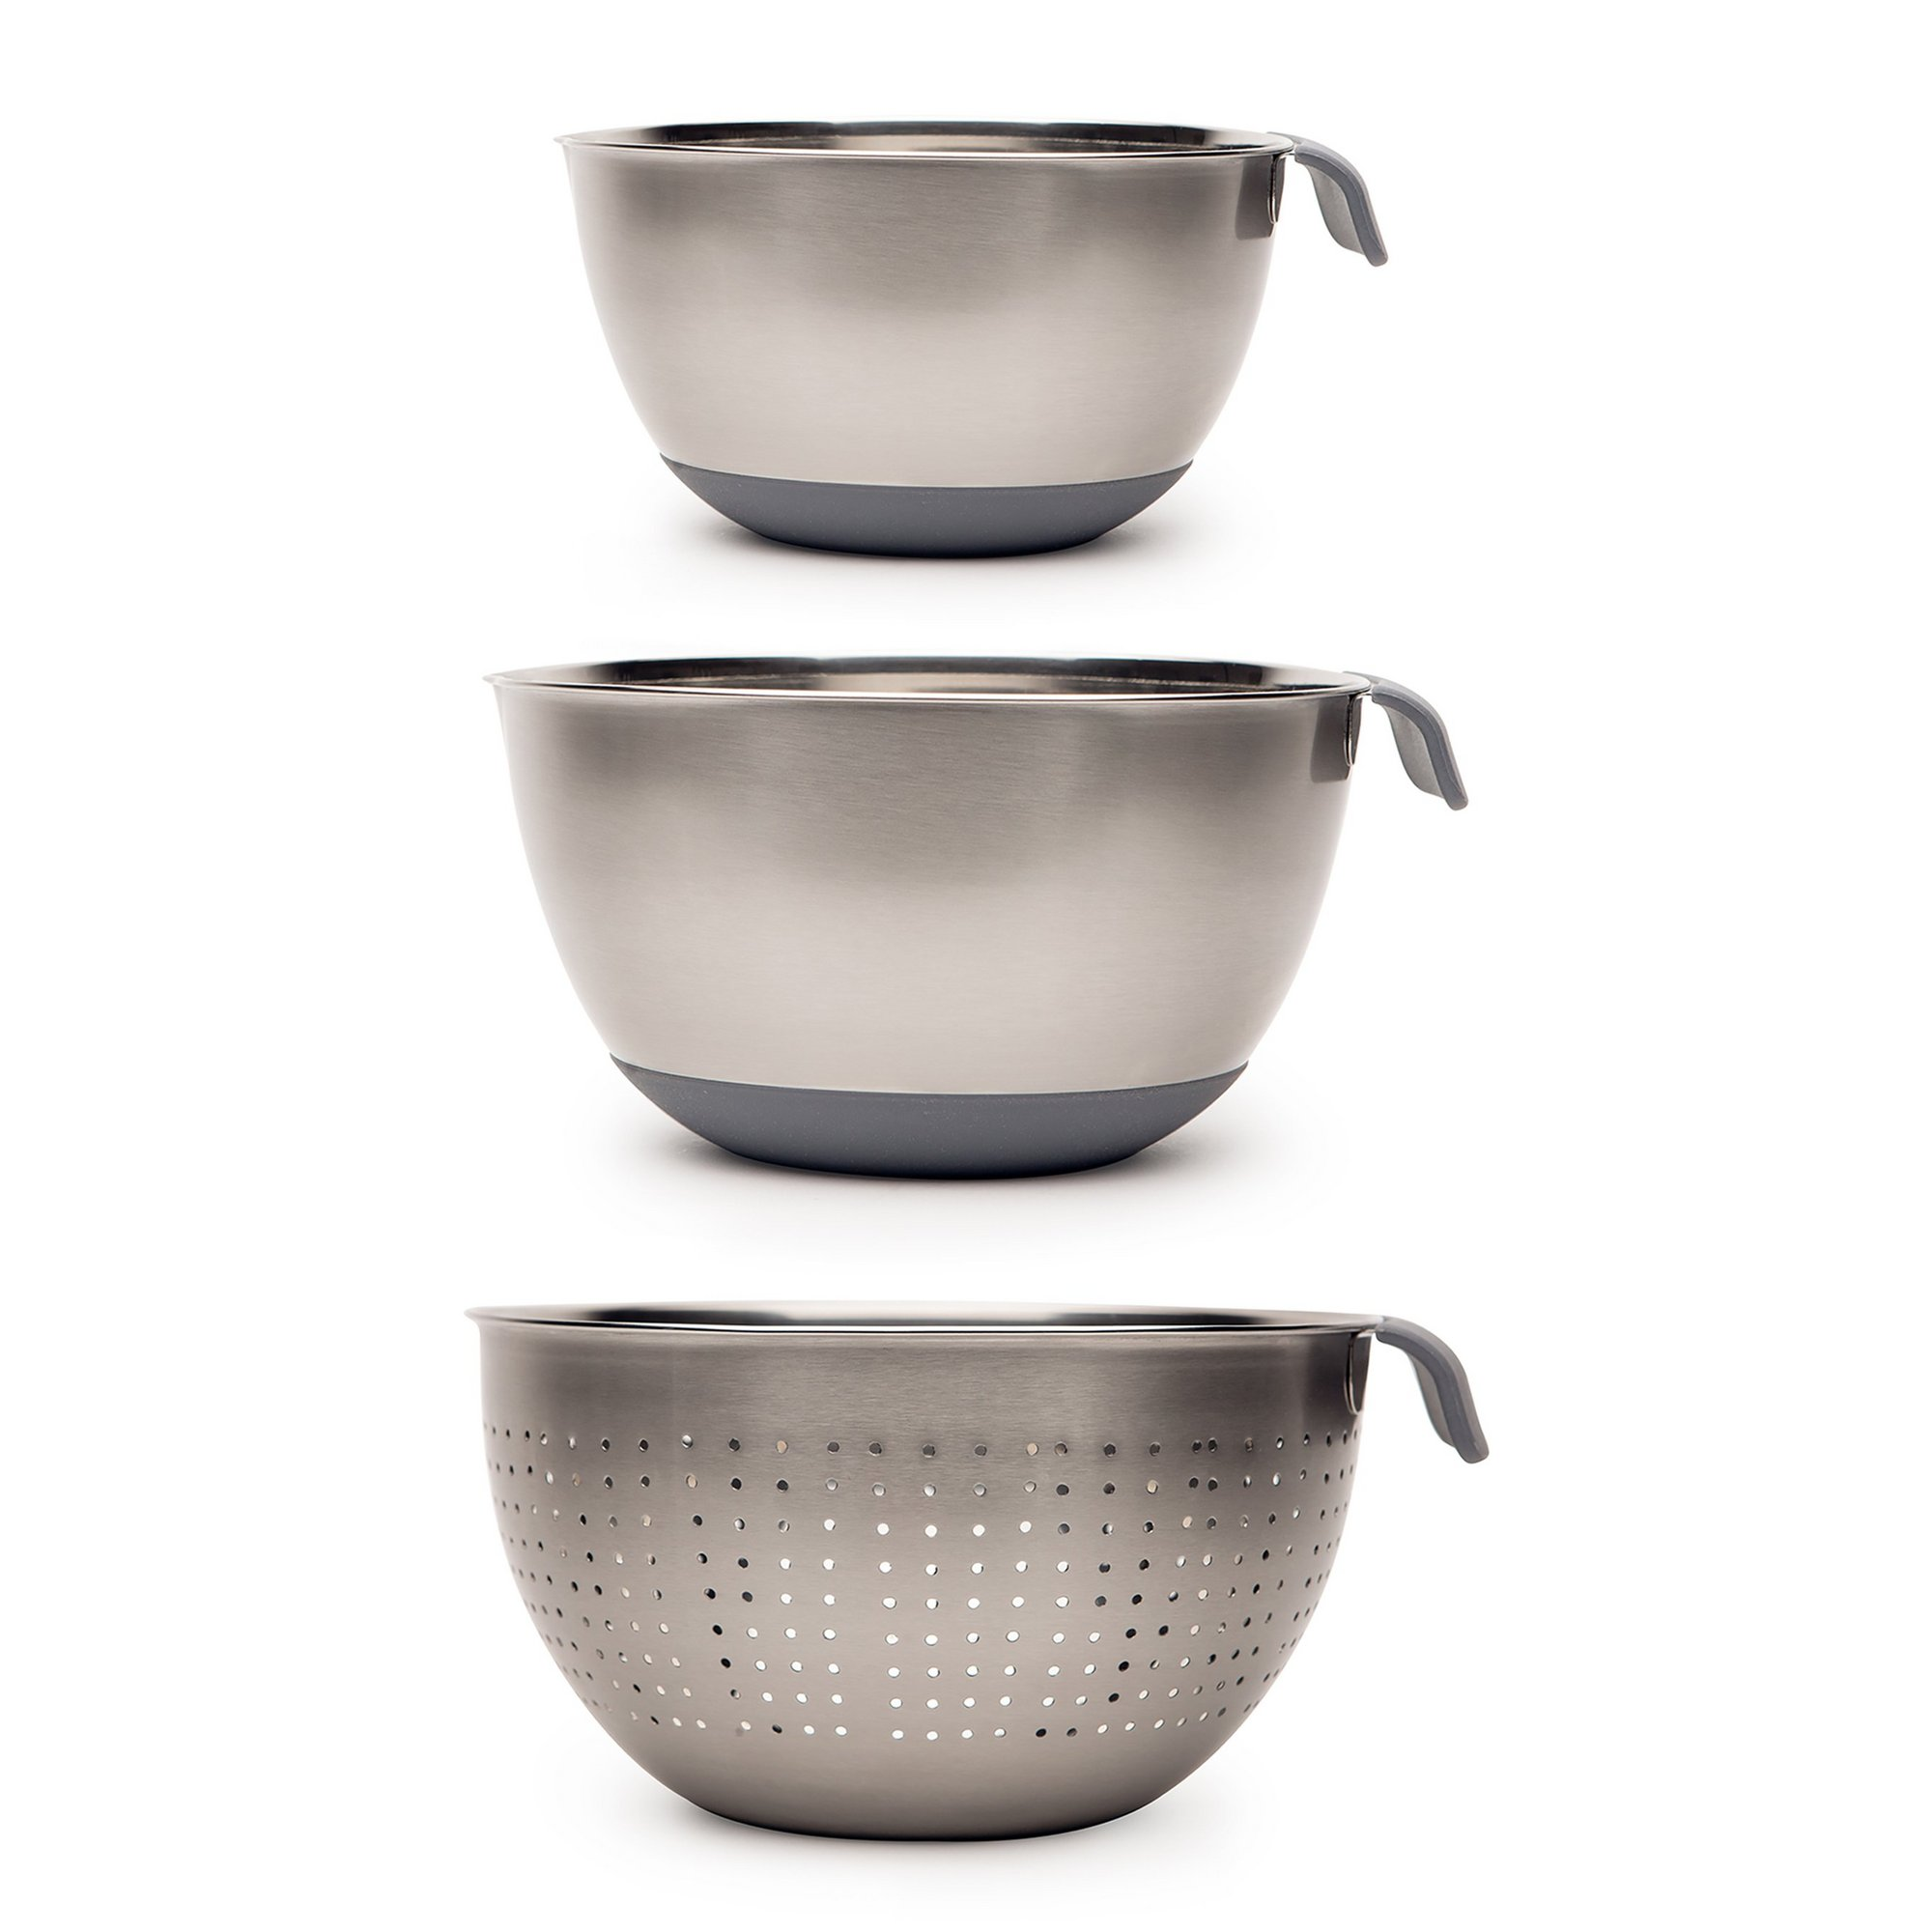 Image of Haden Perth Colander and 2 Piece Mixing Bowl Set